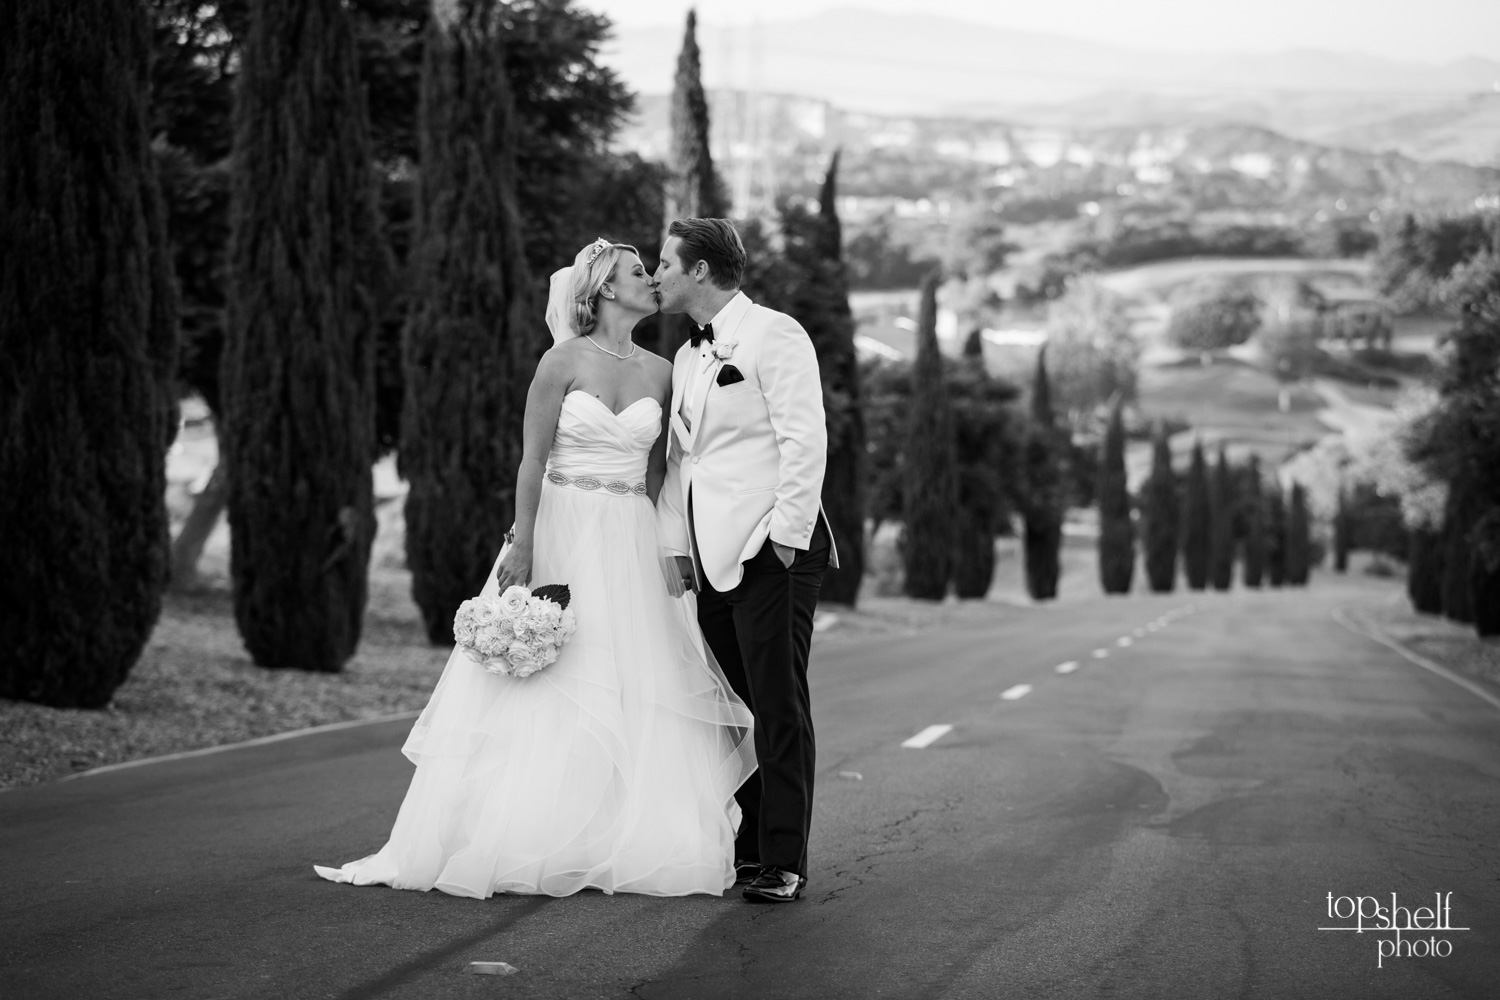 wedding-bella-collina-san-clemente-top-shelf-photo-23.jpg